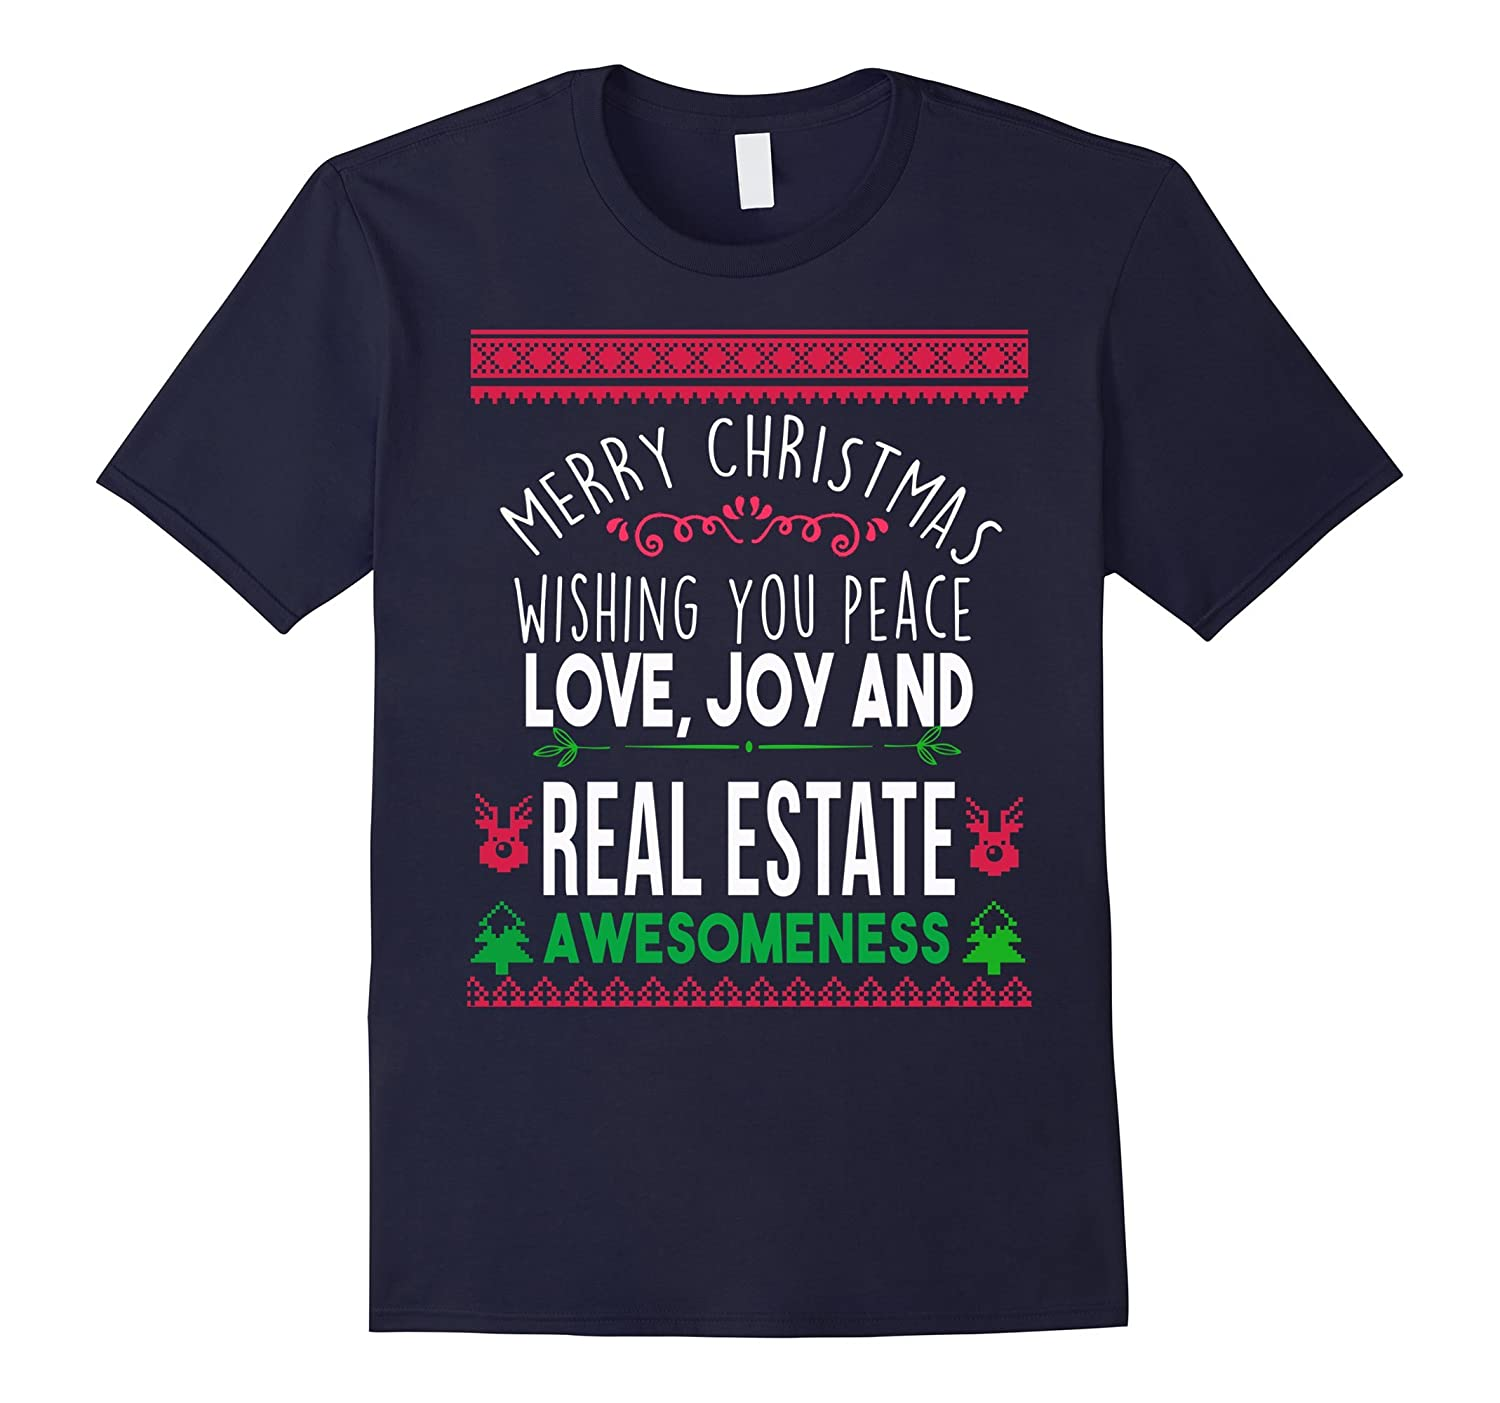 Merry Christmas peace love real estate awesomeness t-shirt-CL